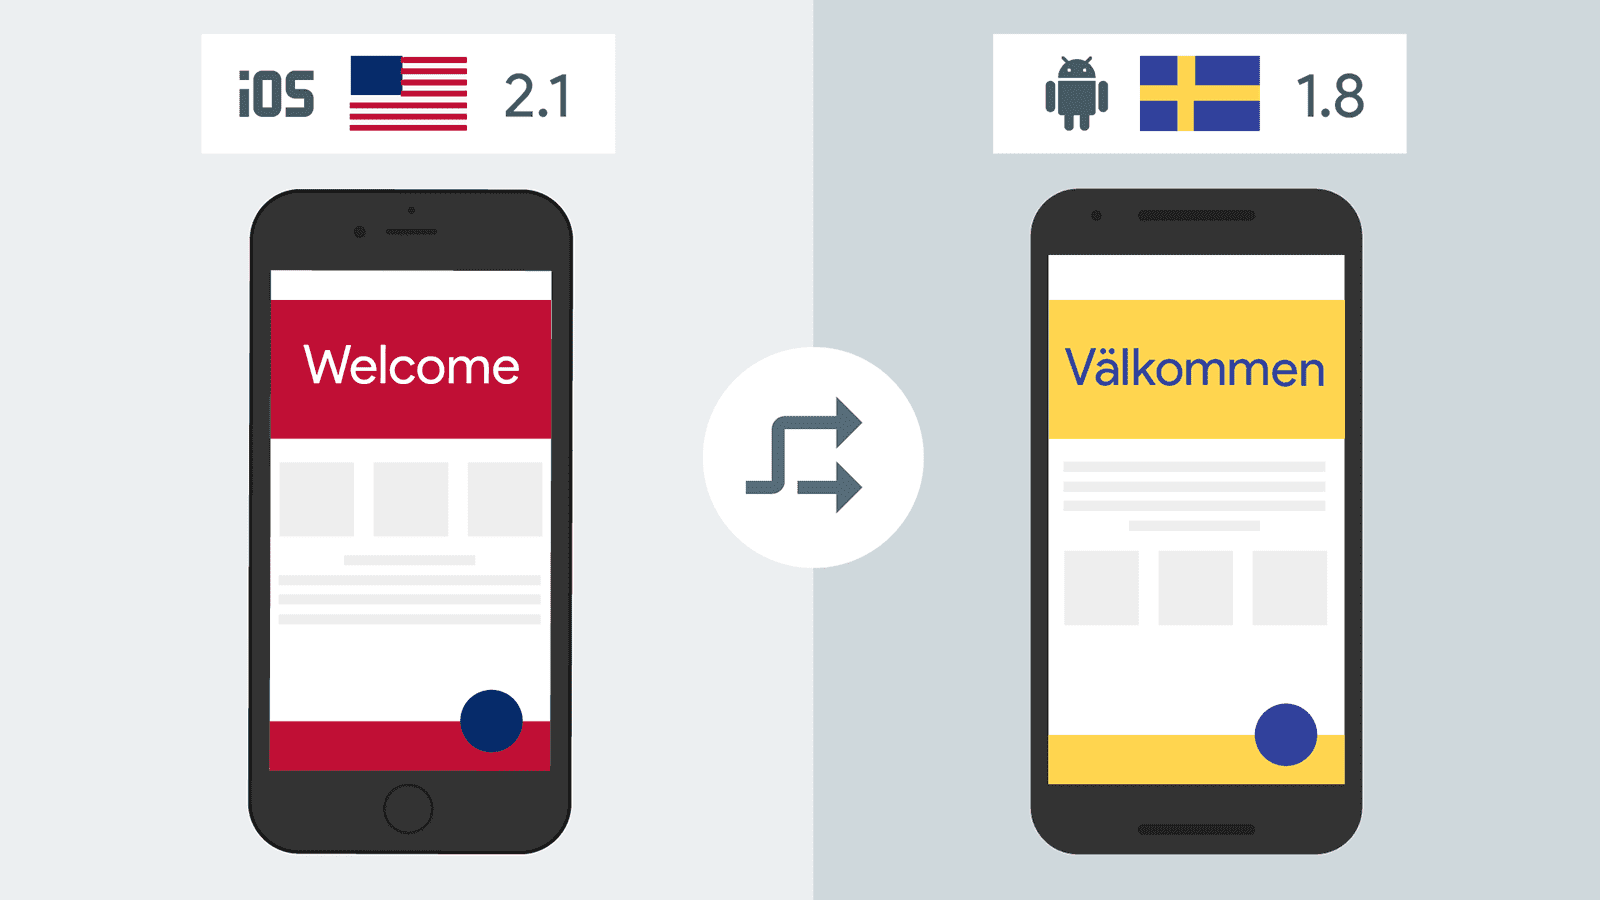 Two phones in two different languages